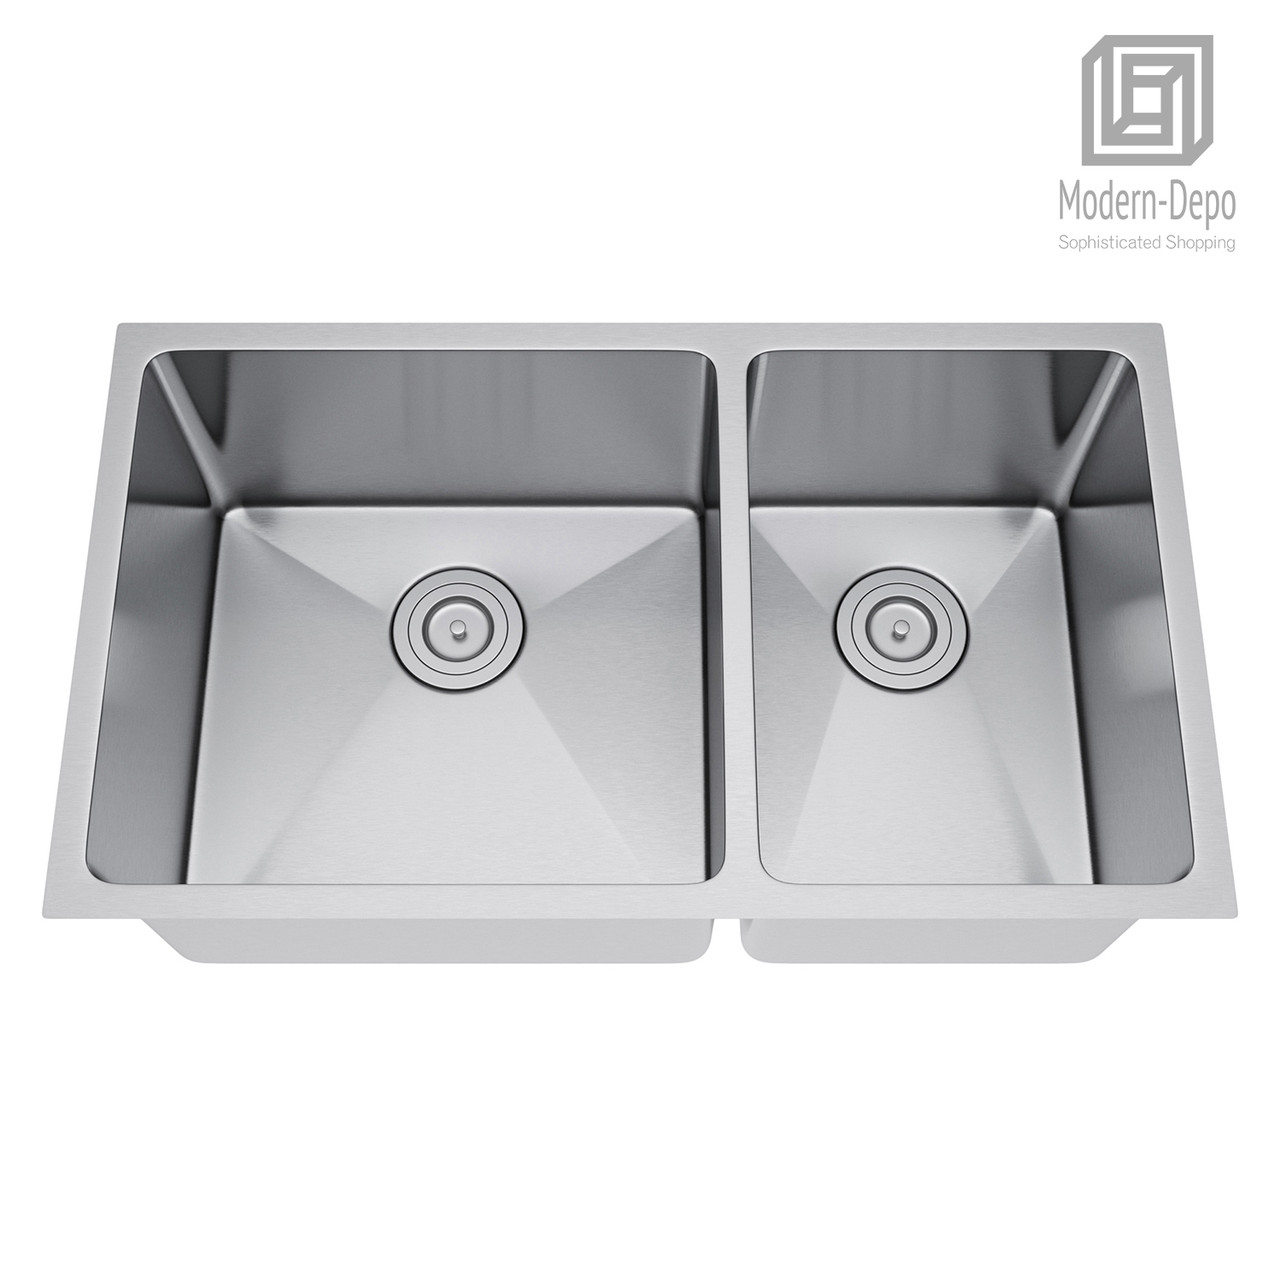 60 40 Kitchen Sink.Exclusive Heritage 32 X 19 Double Bowl 60 40 Undermount Stainless Steel Kitchen Sink With Strainer Ksh 3219 D6 Ubs